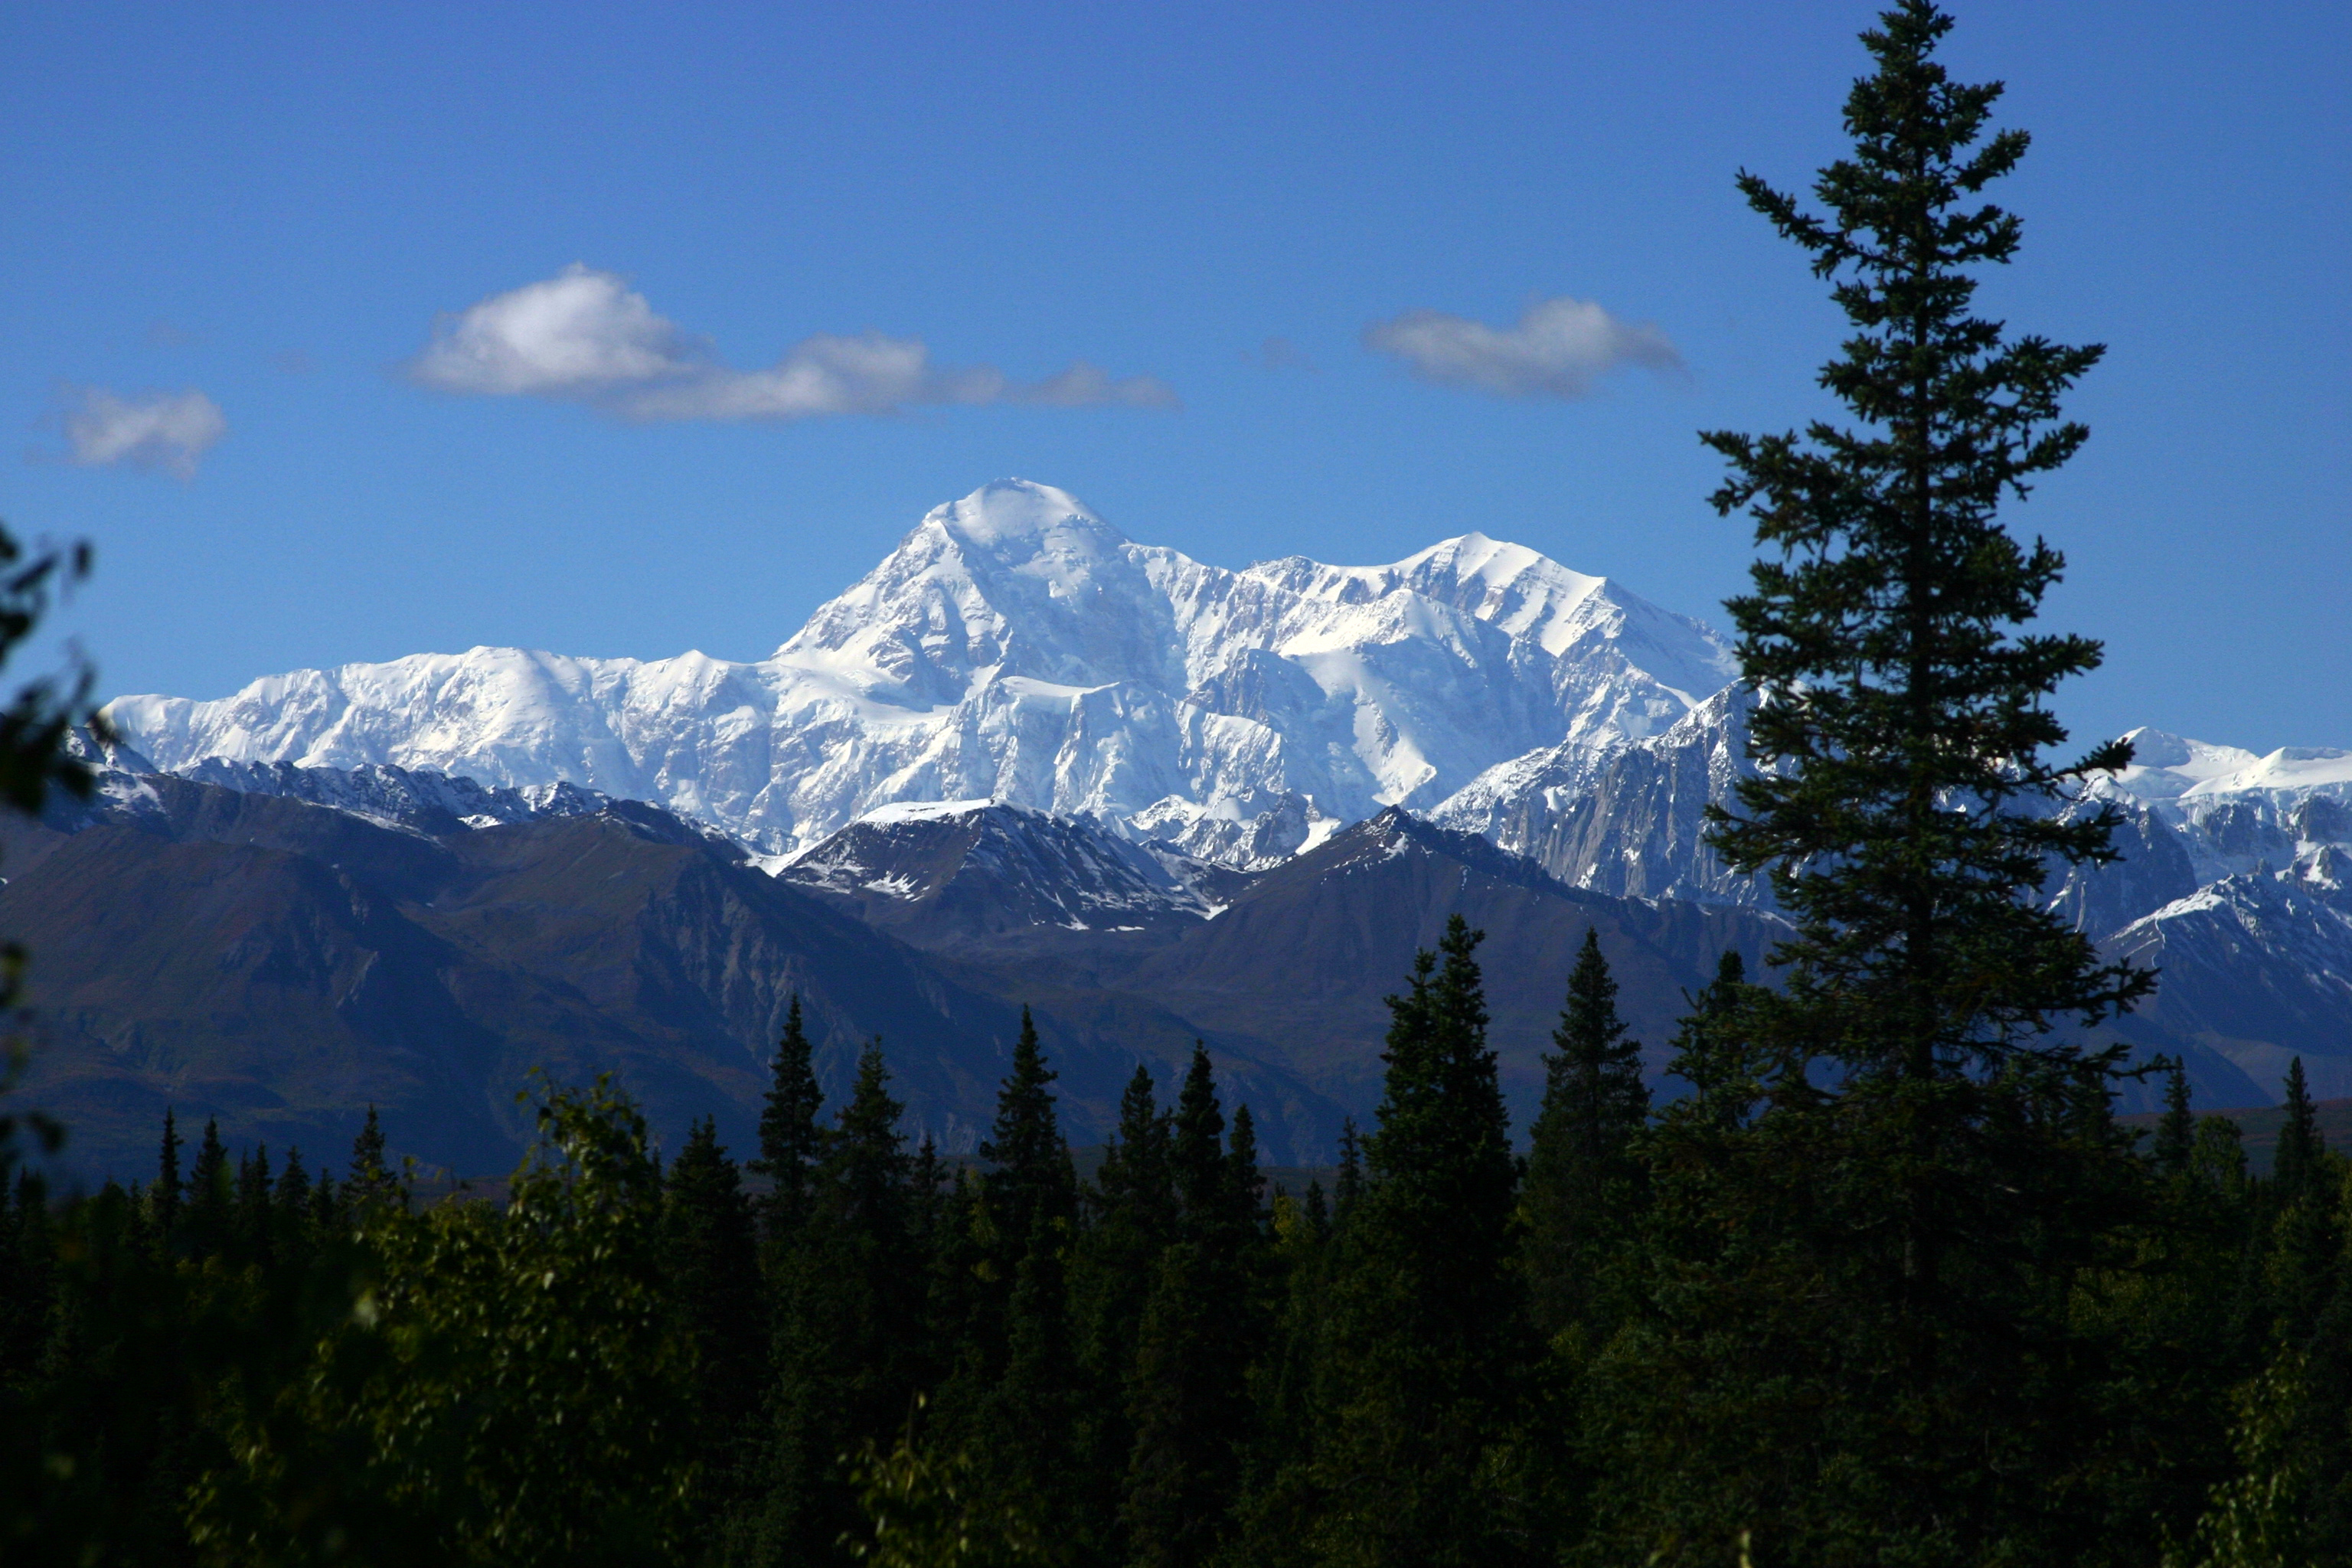 denali national park black dating site Gifts from the interior of alaska  denali national park and preserve encompasses 6 million  i was doing the online dating game when i came across his.